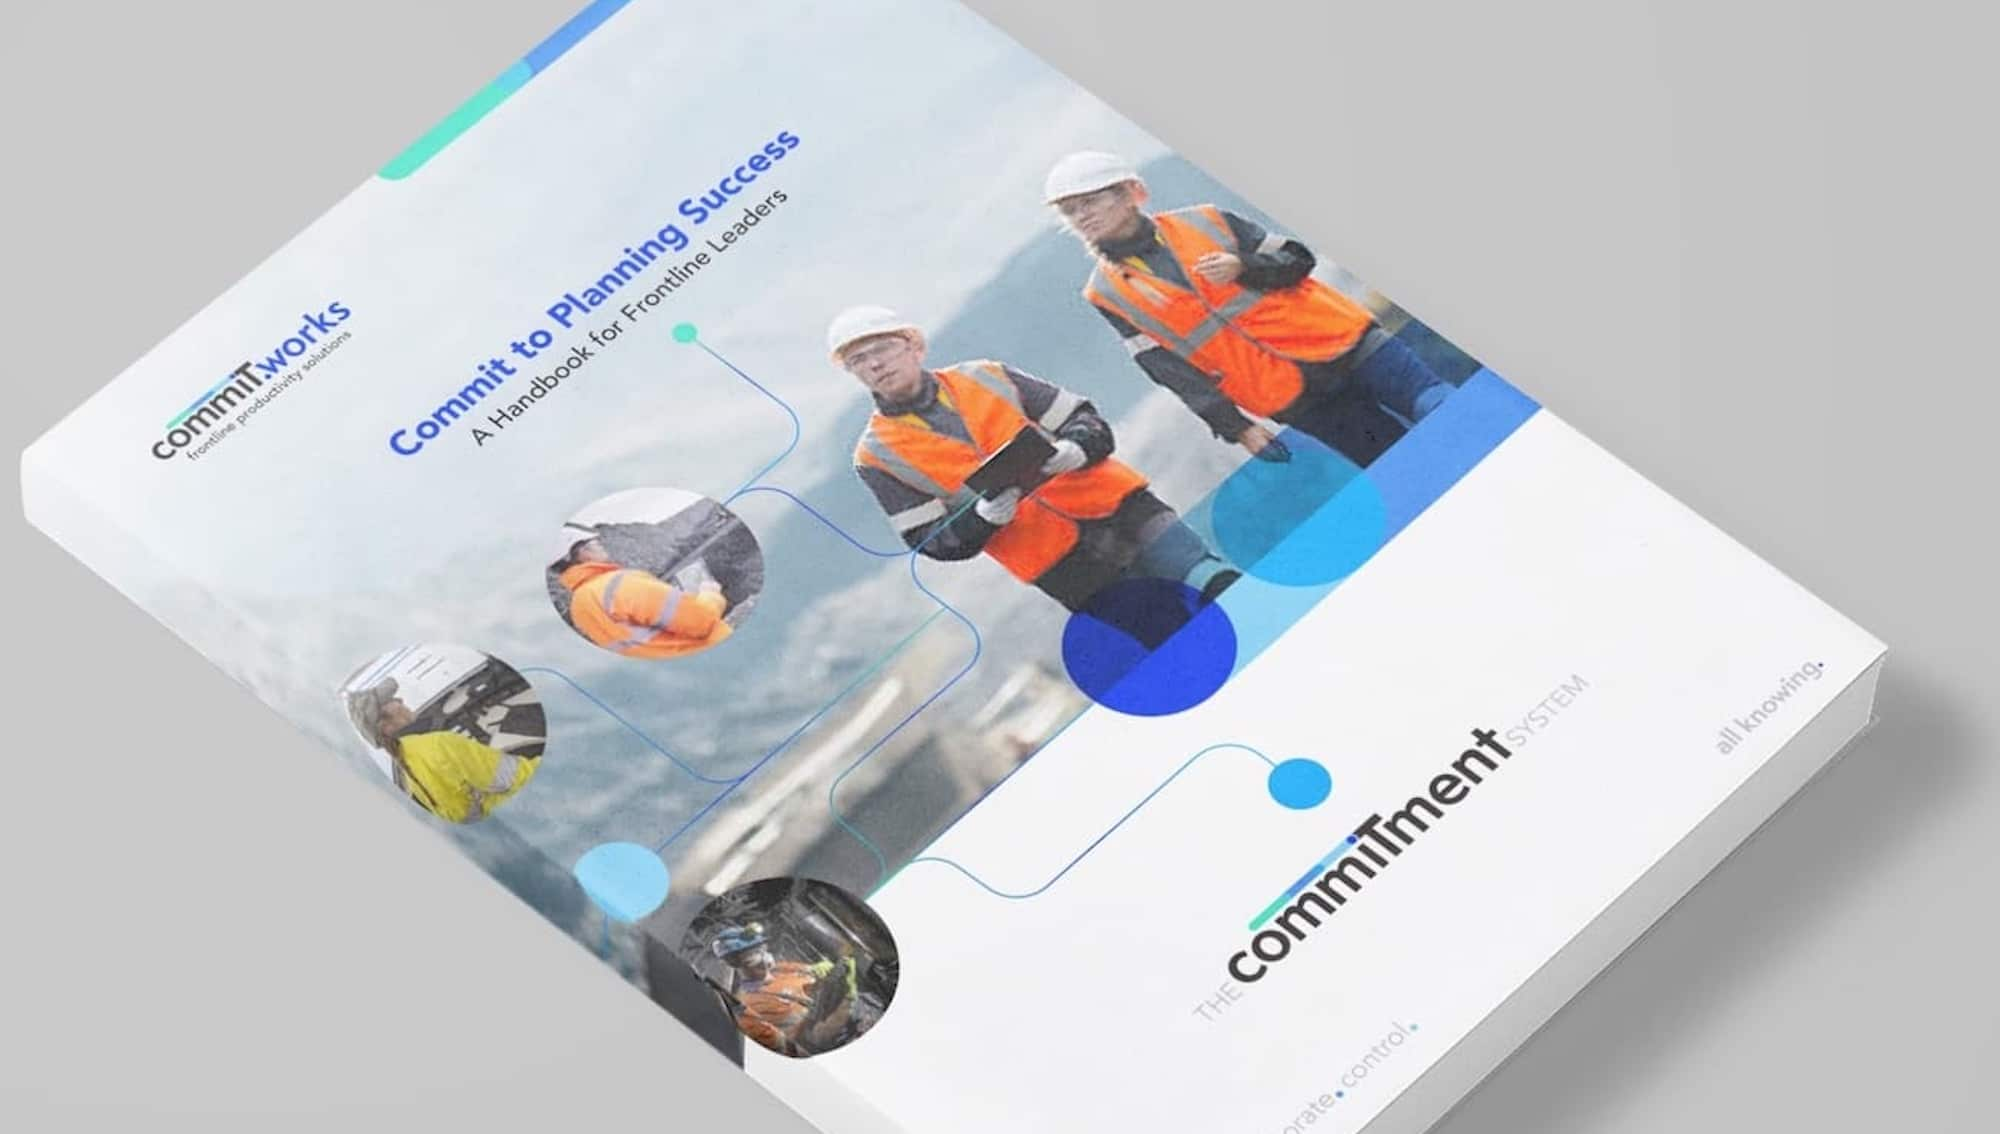 Commitment System Handbook Cropped